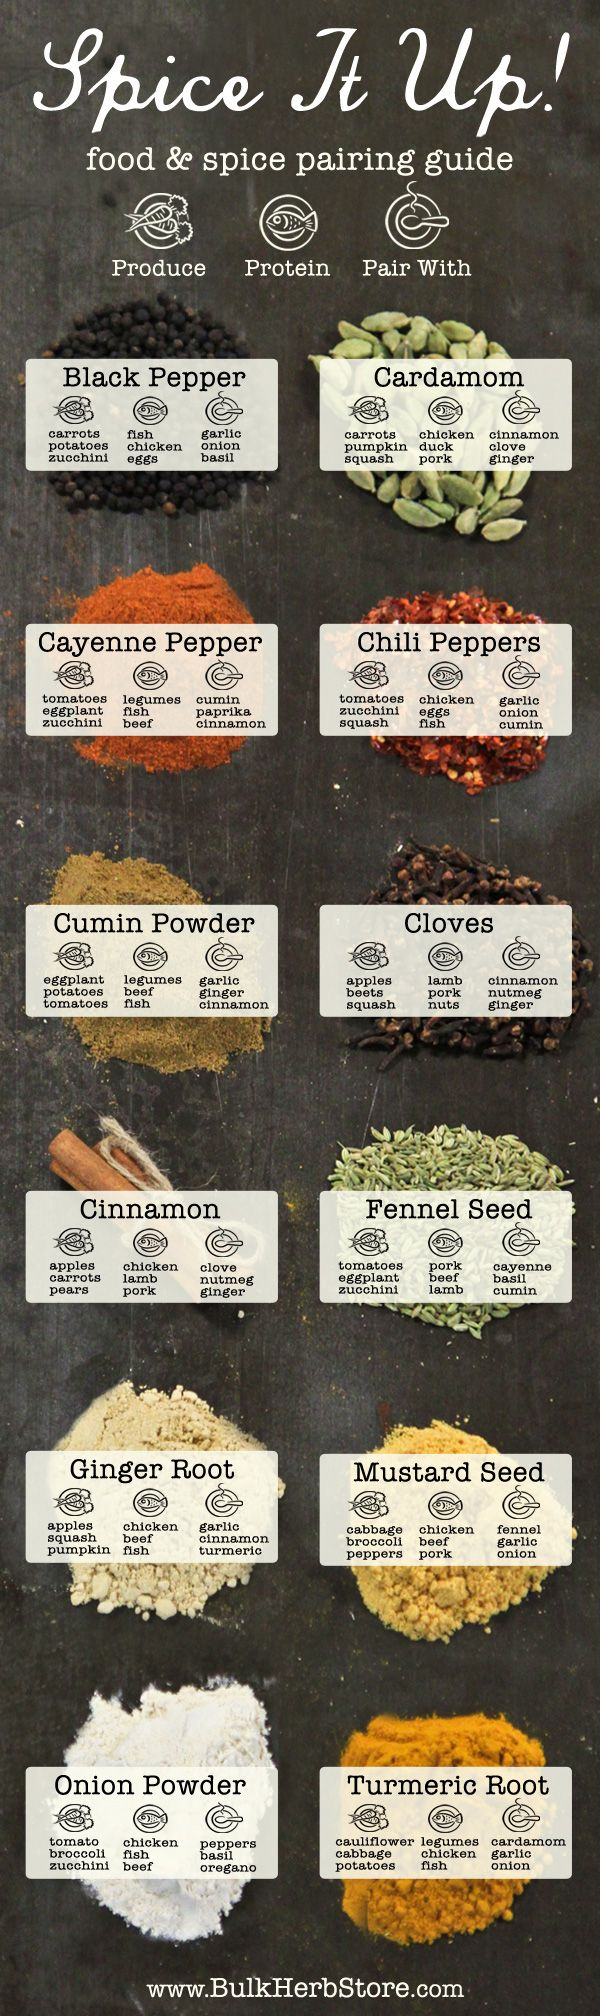 Spice It Up Food Pairing Guide